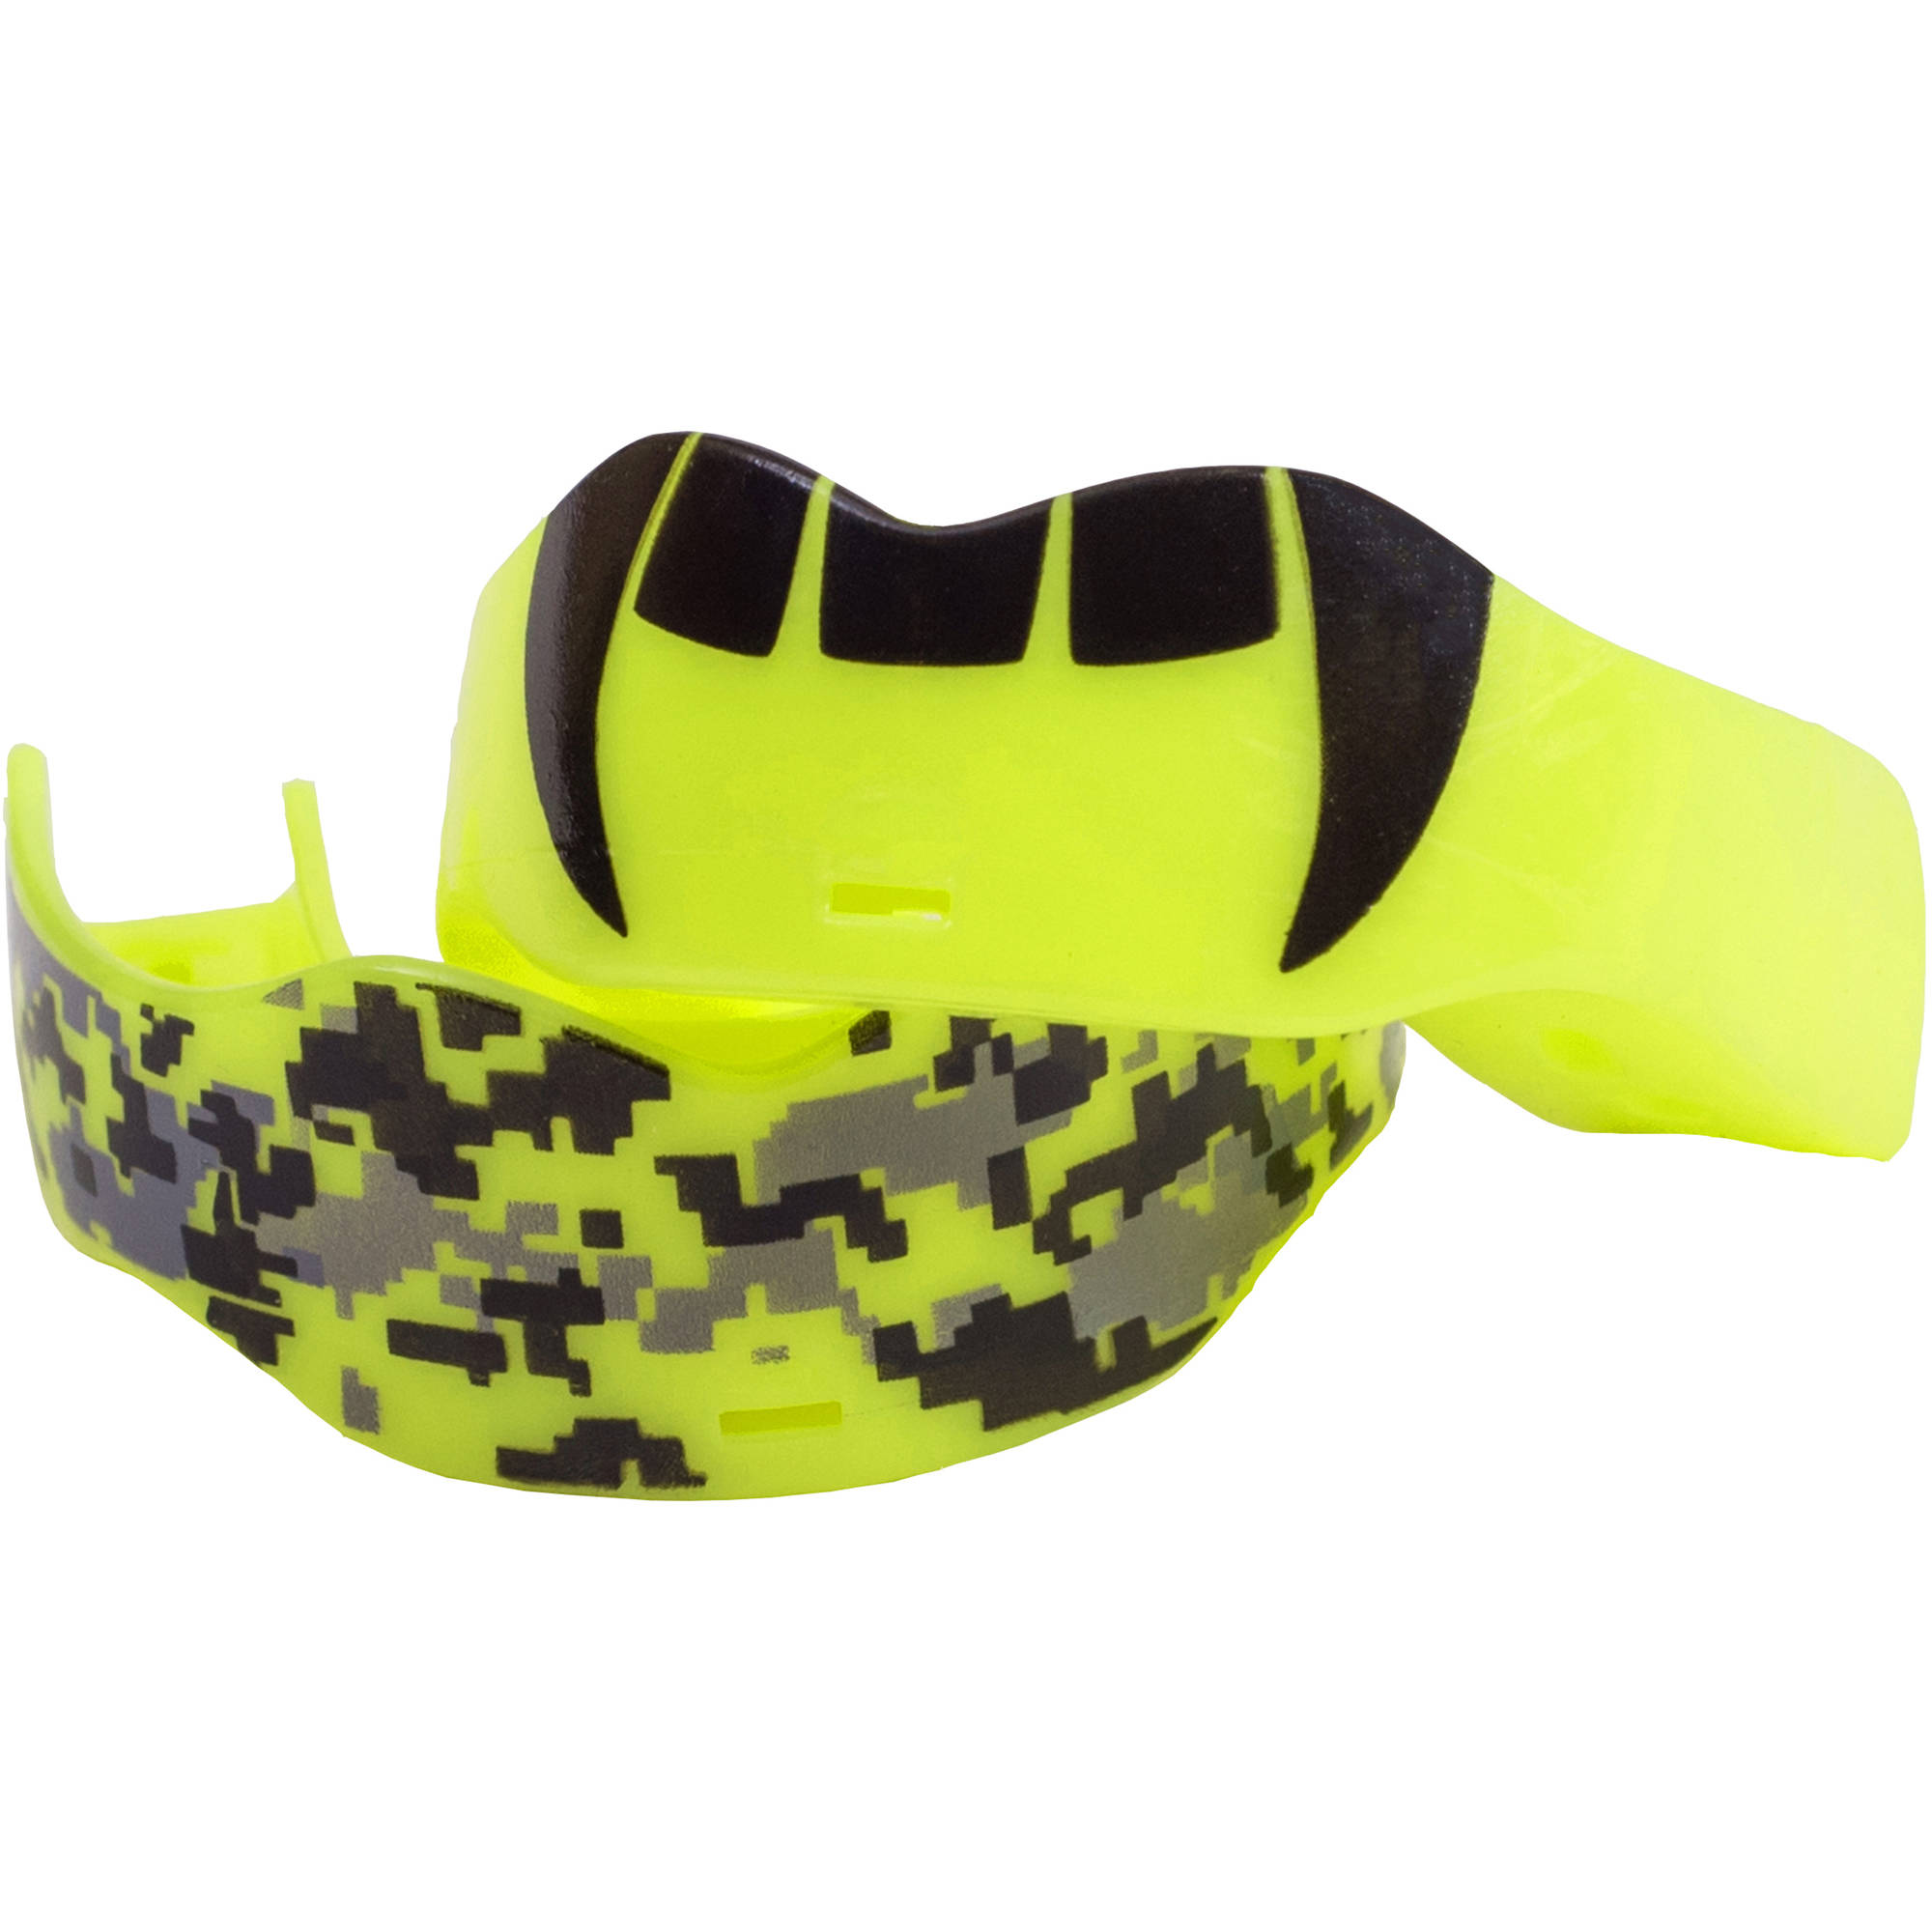 Soldier Sports Custom 7312 Mouthguard, Neon